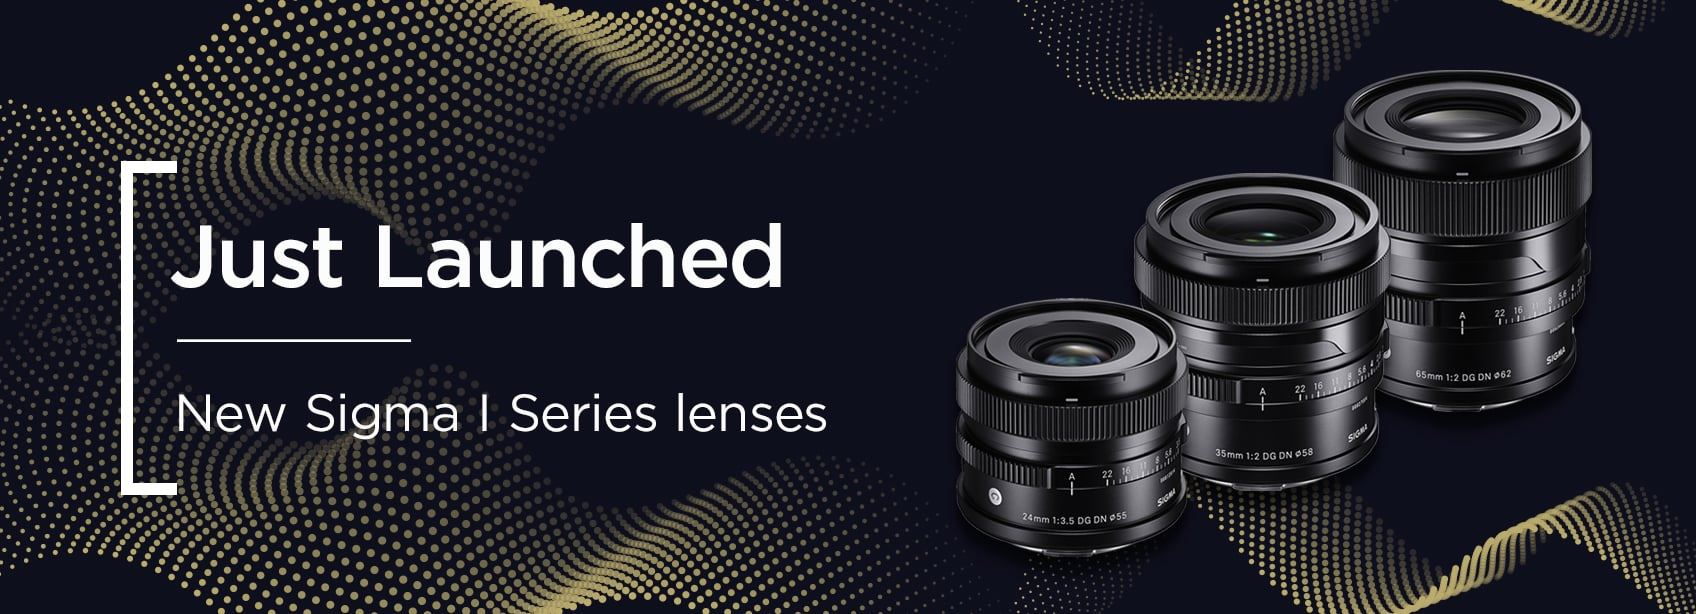 Just Launched - New Sigma I Series Lenses